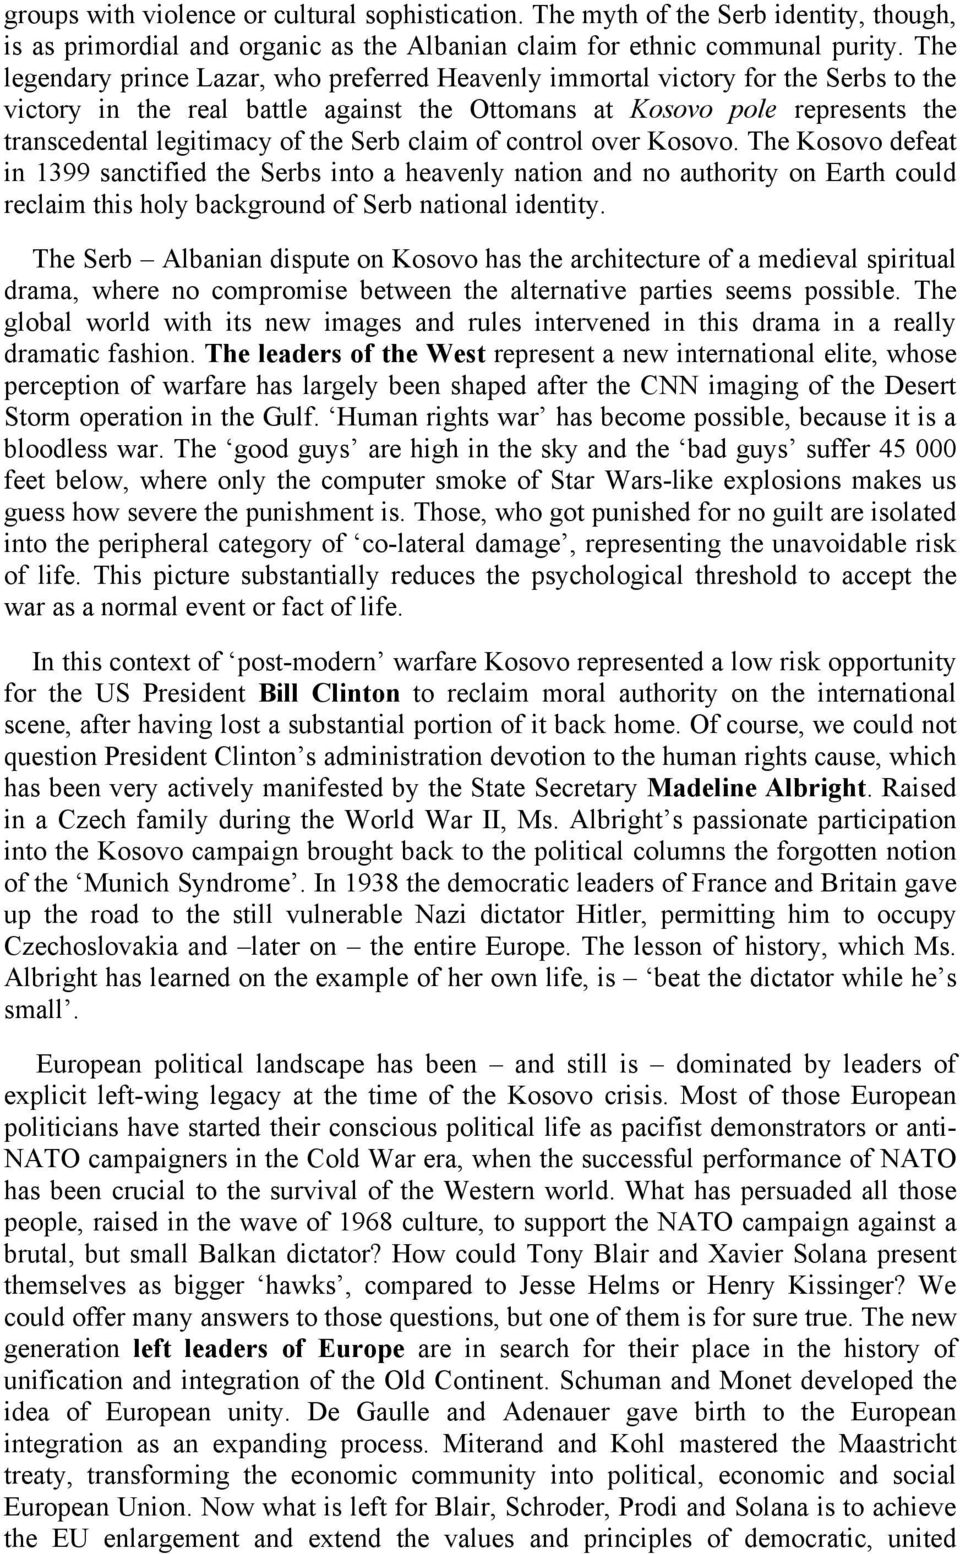 Serb claim of control over Kosovo. The Kosovo defeat in 1399 sanctified the Serbs into a heavenly nation and no authority on Earth could reclaim this holy background of Serb national identity.